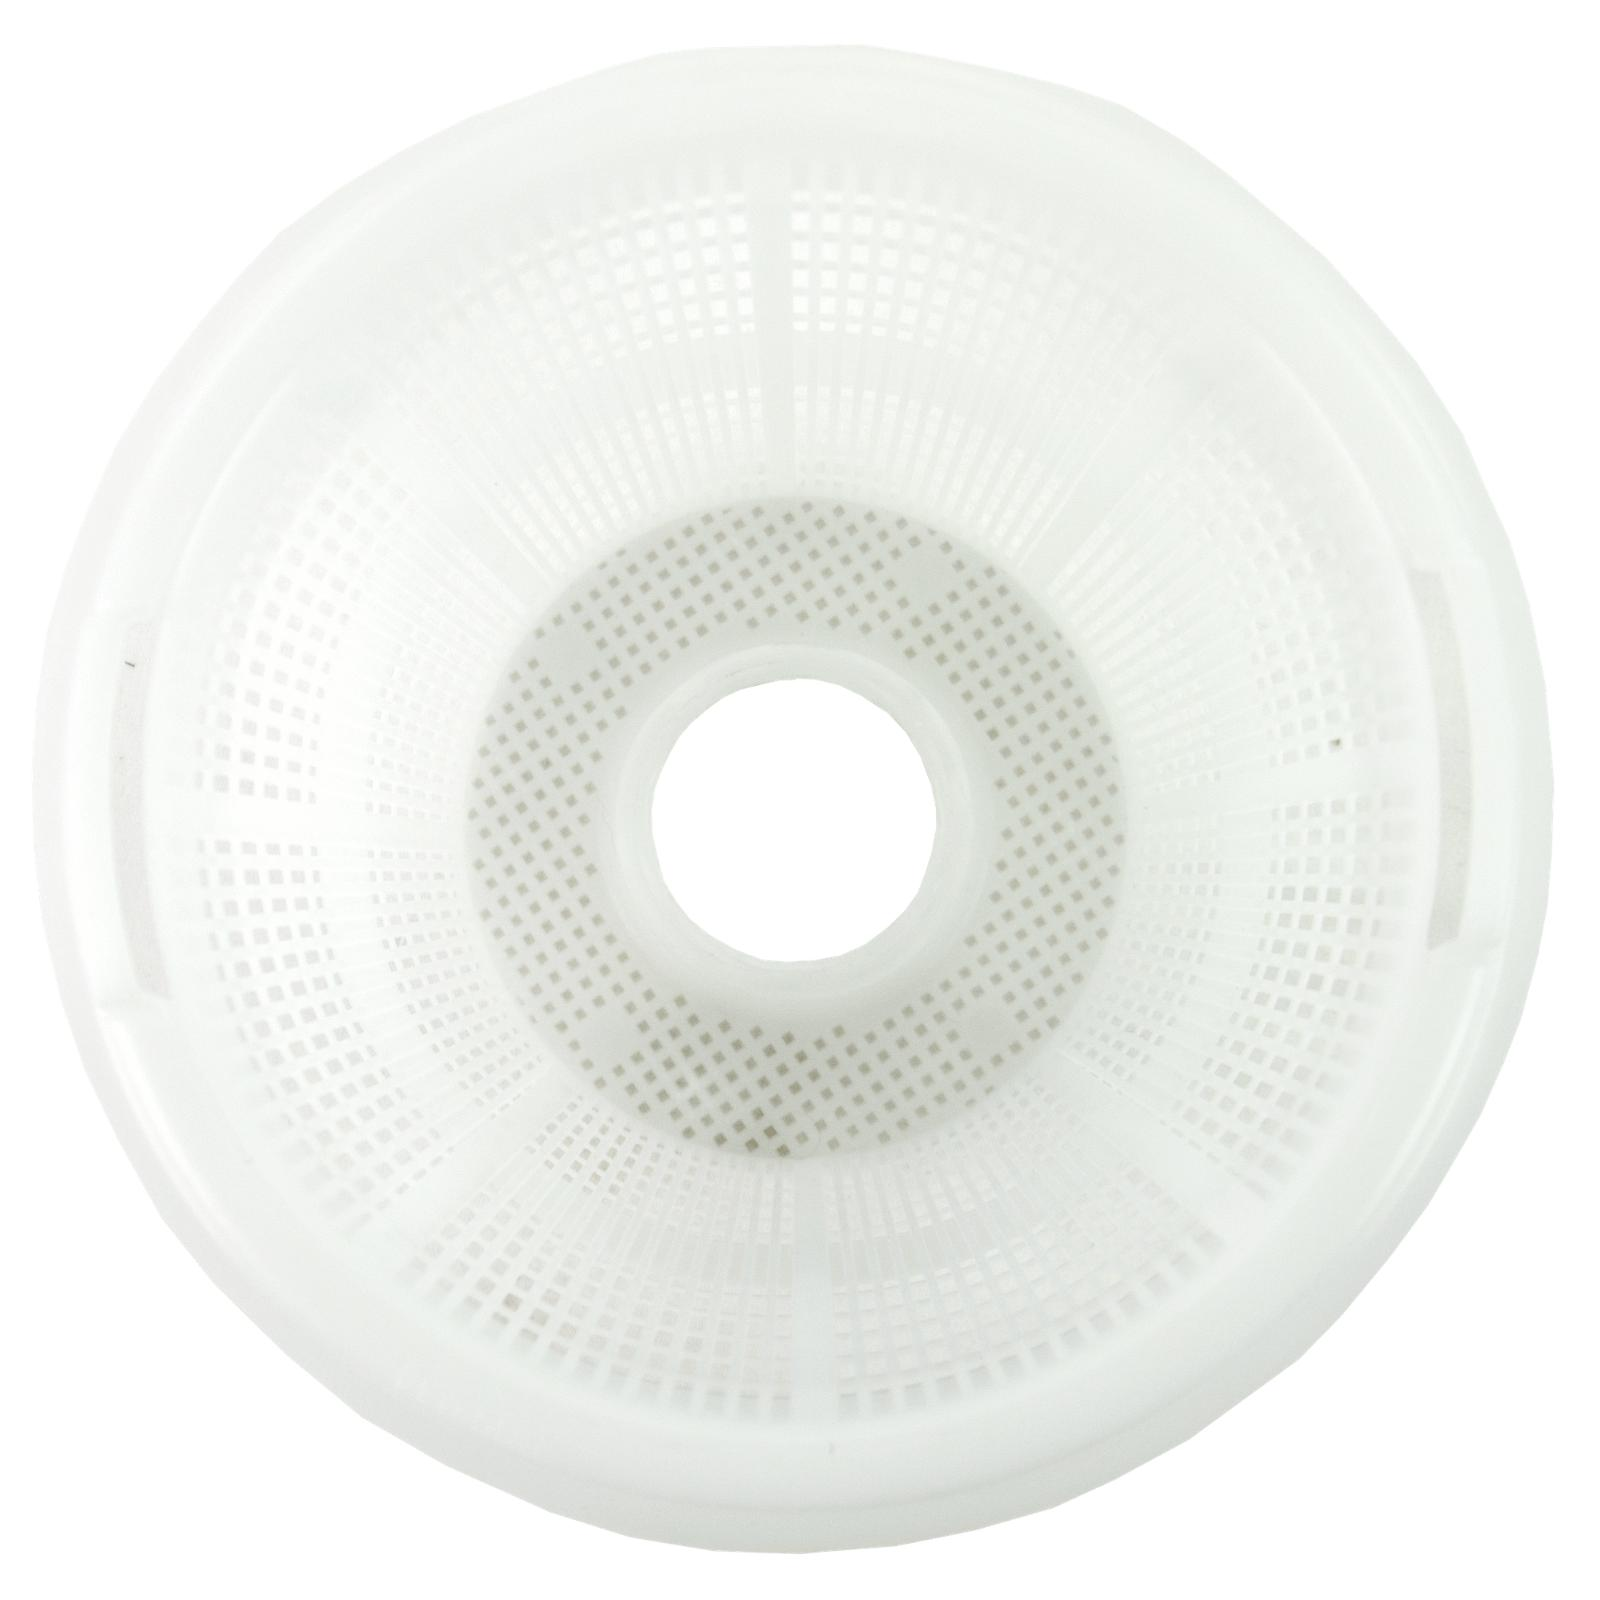 Poolrite S1800 Skimmer Basket-Skimmer Baskets-Mr Pool Man